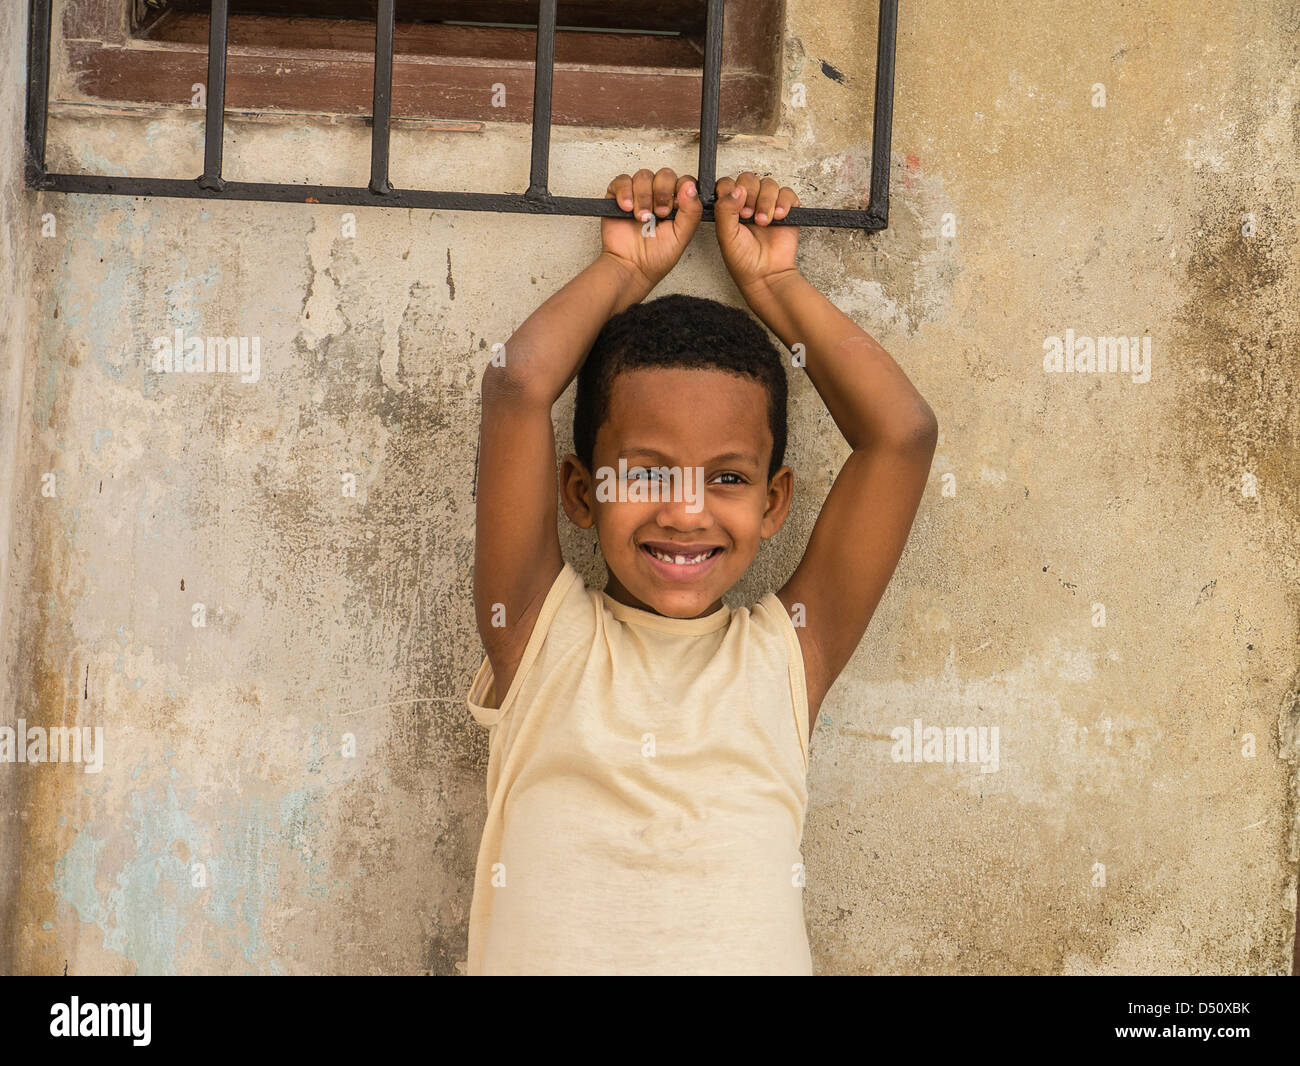 An 8-10 year old Hispanic Cuban boy holds on to an iron window grate over a window of his home with his arms above - Stock Image